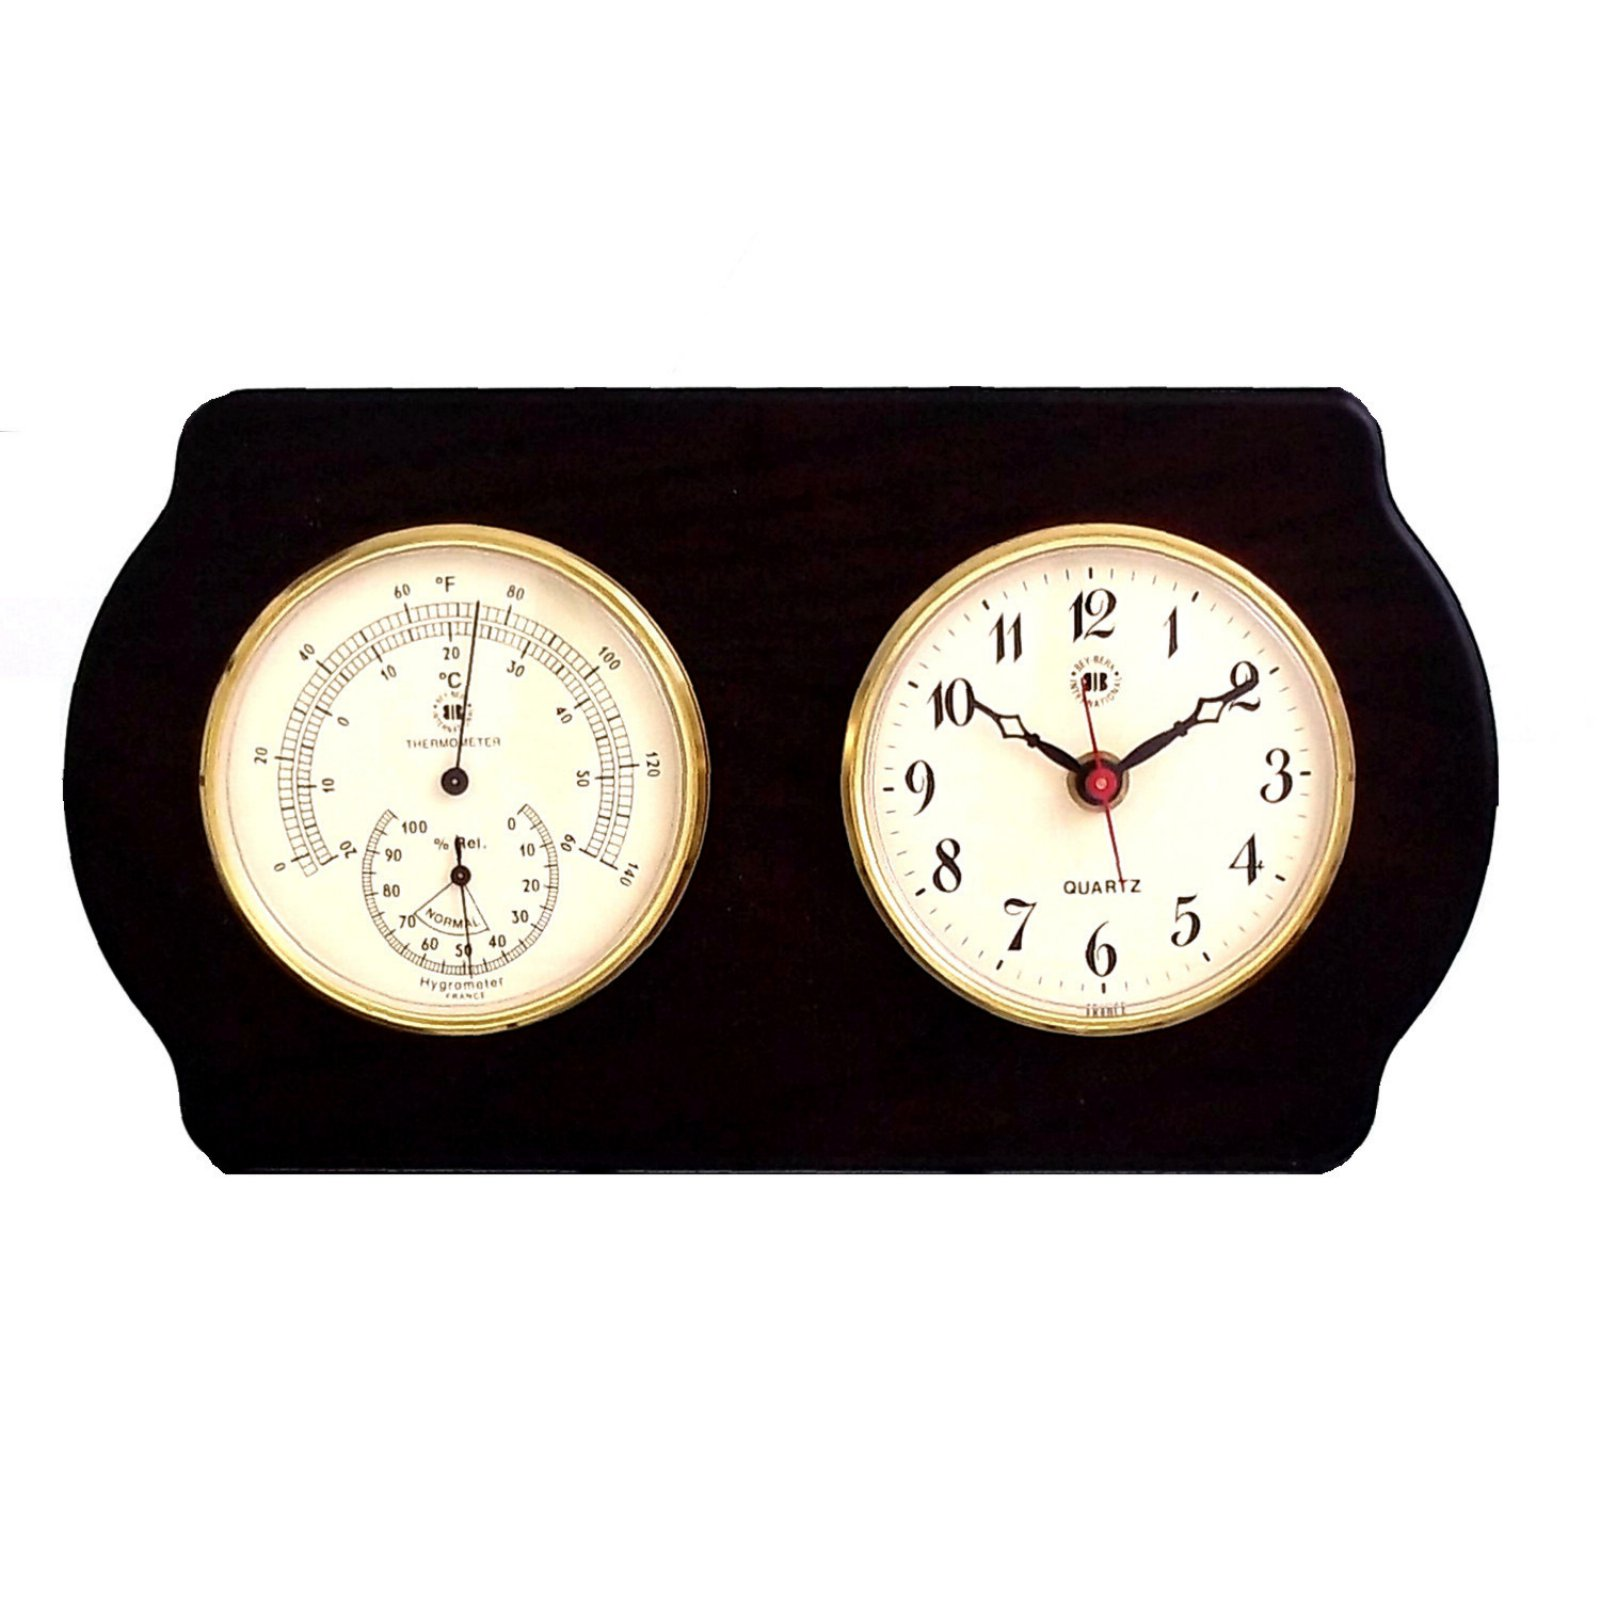 Bey-Berk International Brass Clock, Thermo./Hygro. on Ash Wood T.P.